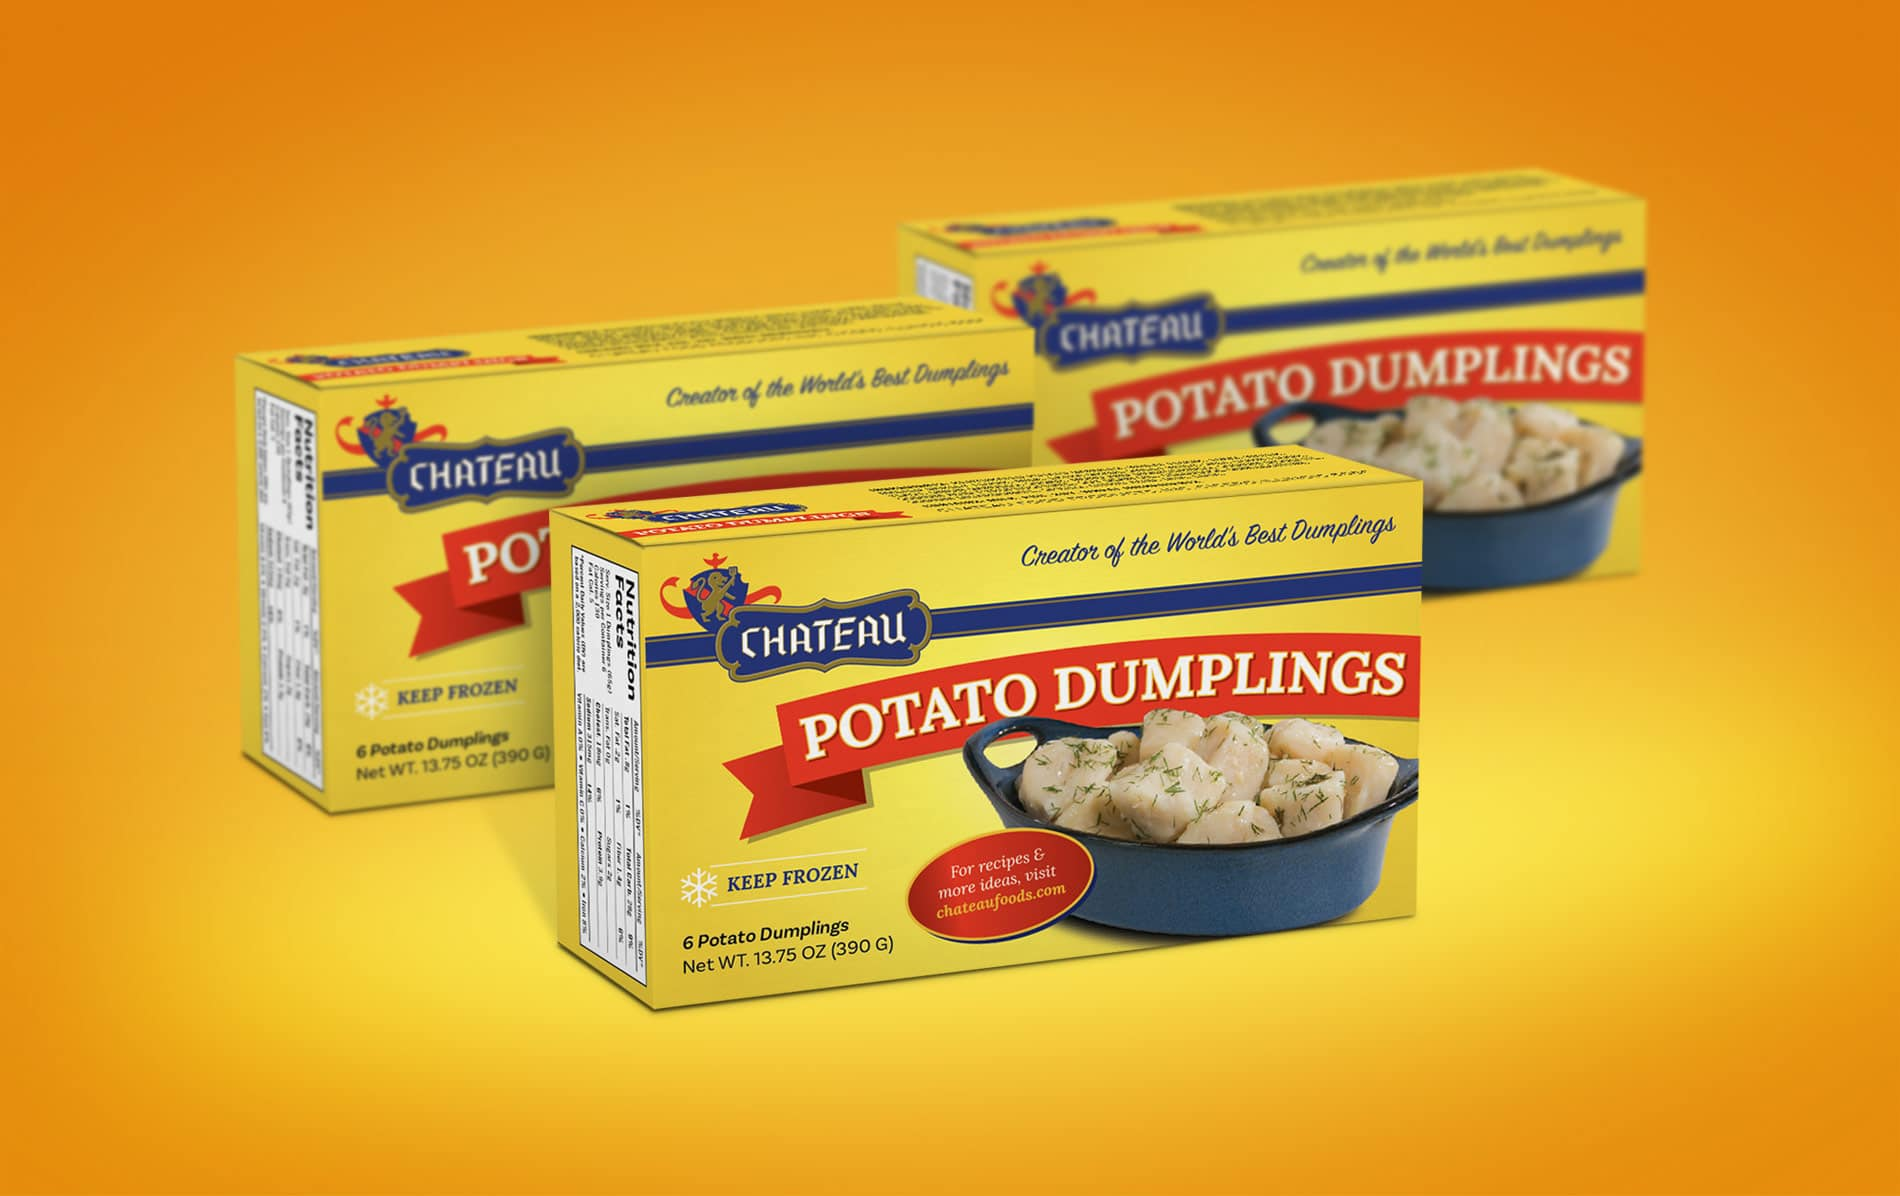 Chateau Potato Dumplings Package Design